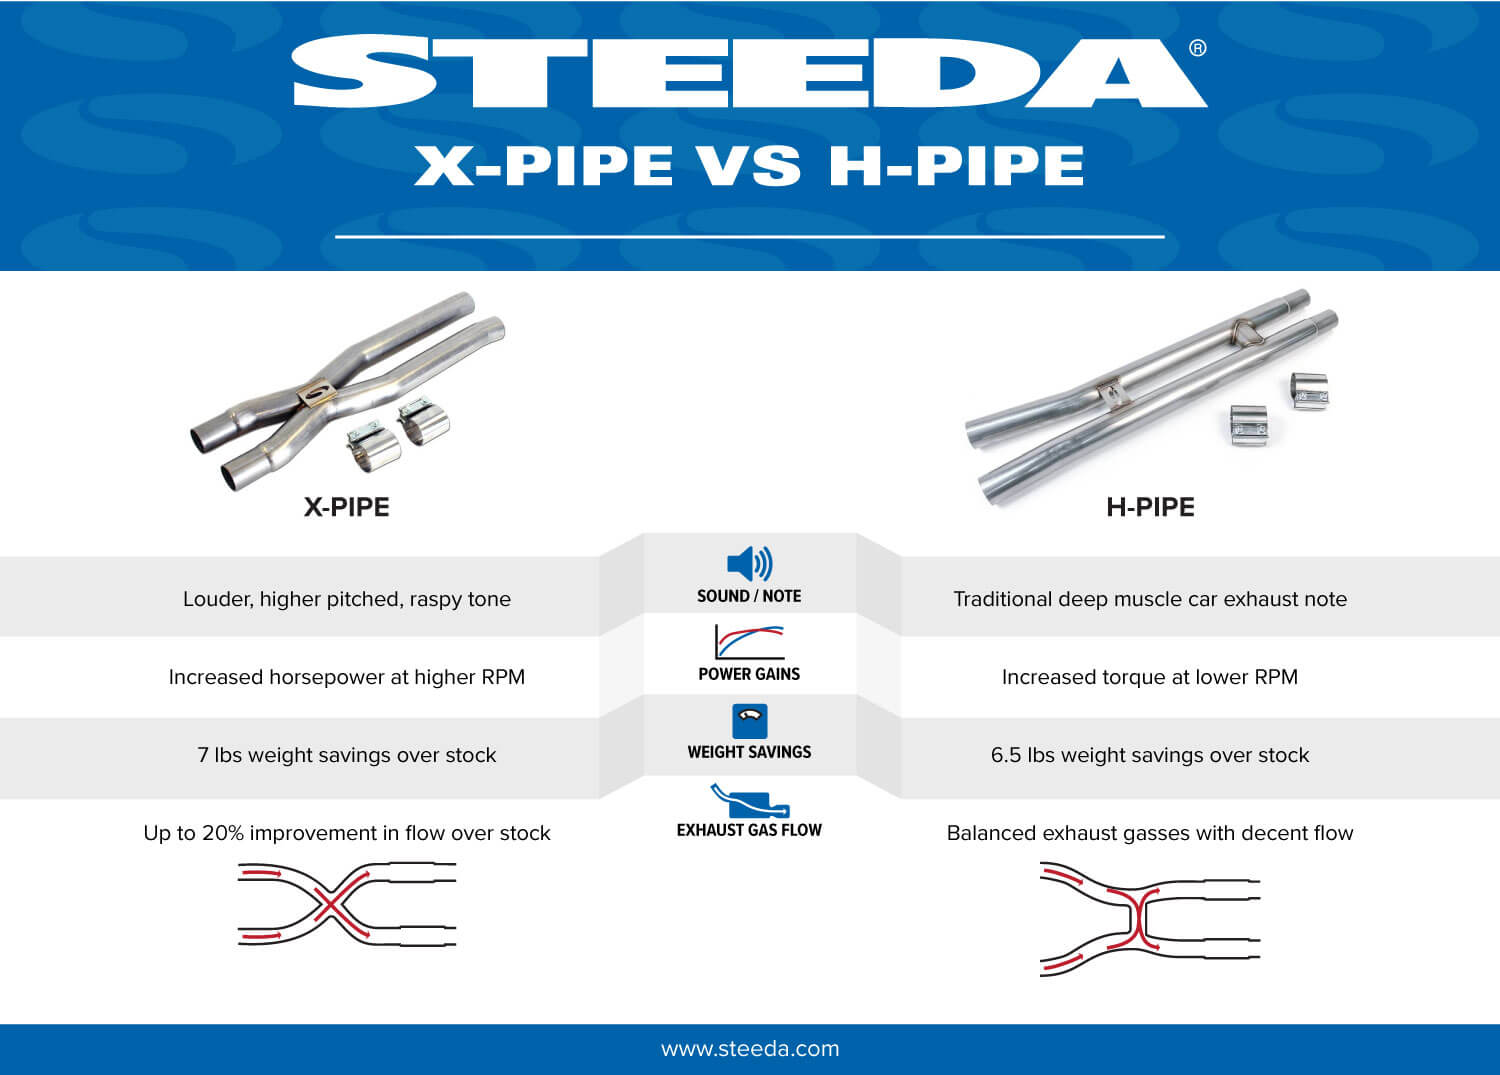 X-Pipe vs H-Pipe Micrographic